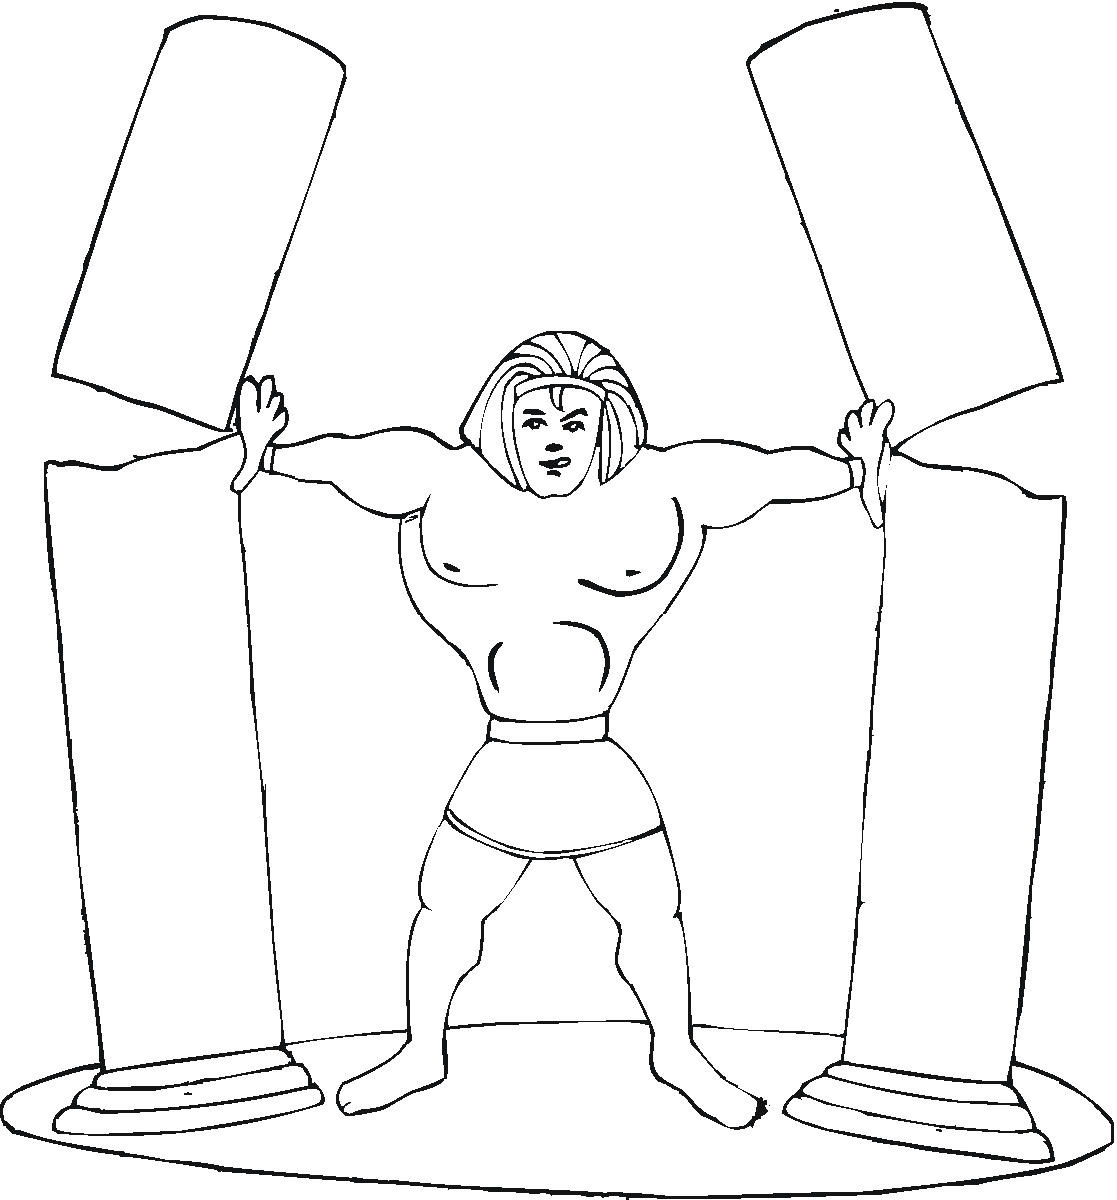 Samson coloring page for Samson and delilah coloring pages